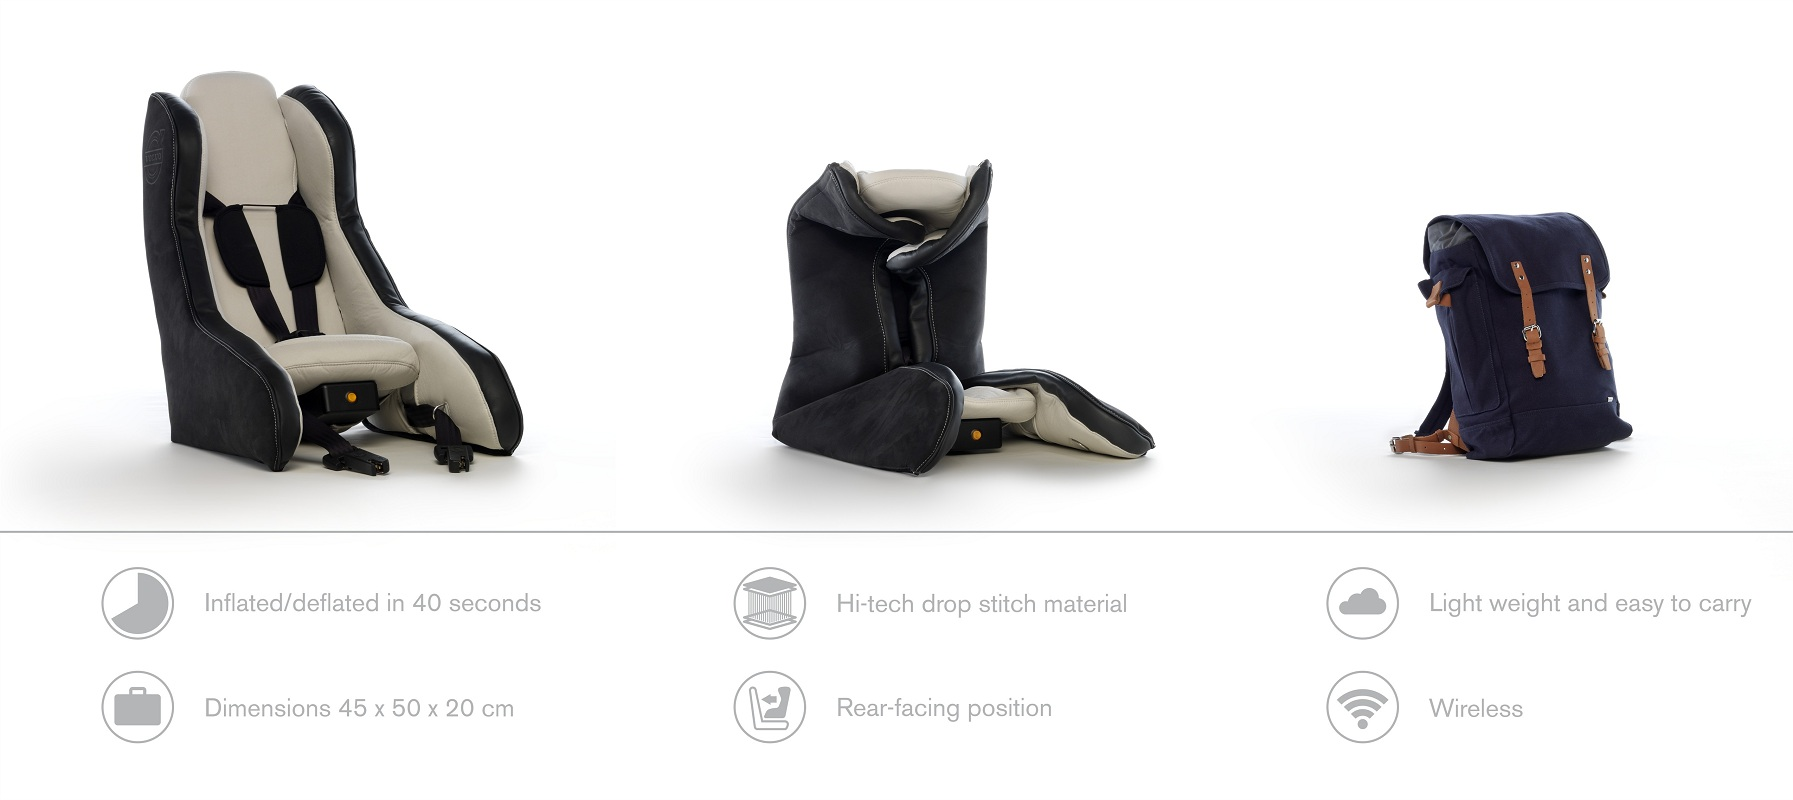 Inflatable child seat concept features